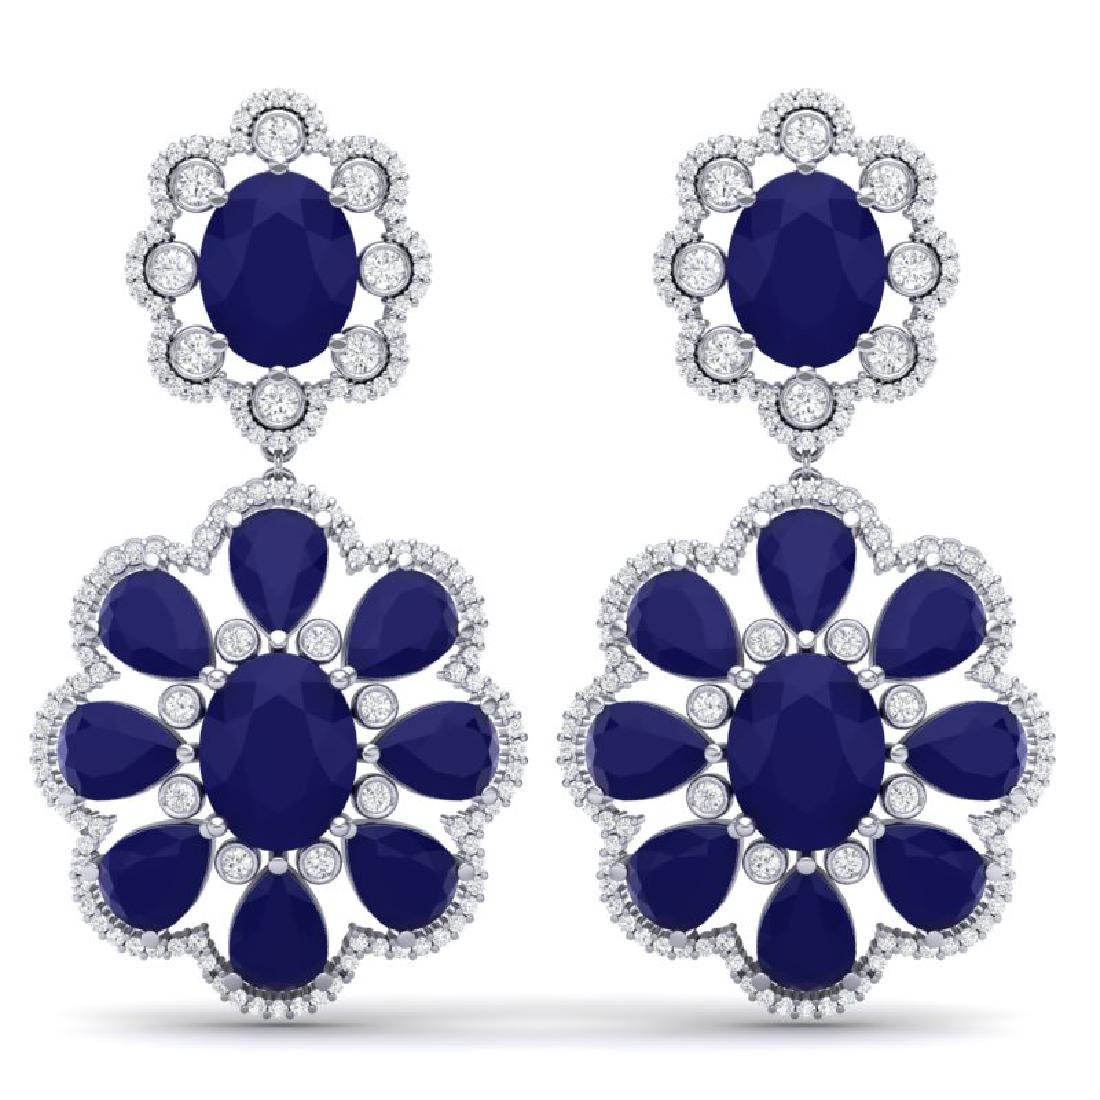 33.88 CTW Royalty Sapphire & VS Diamond Earrings 18K